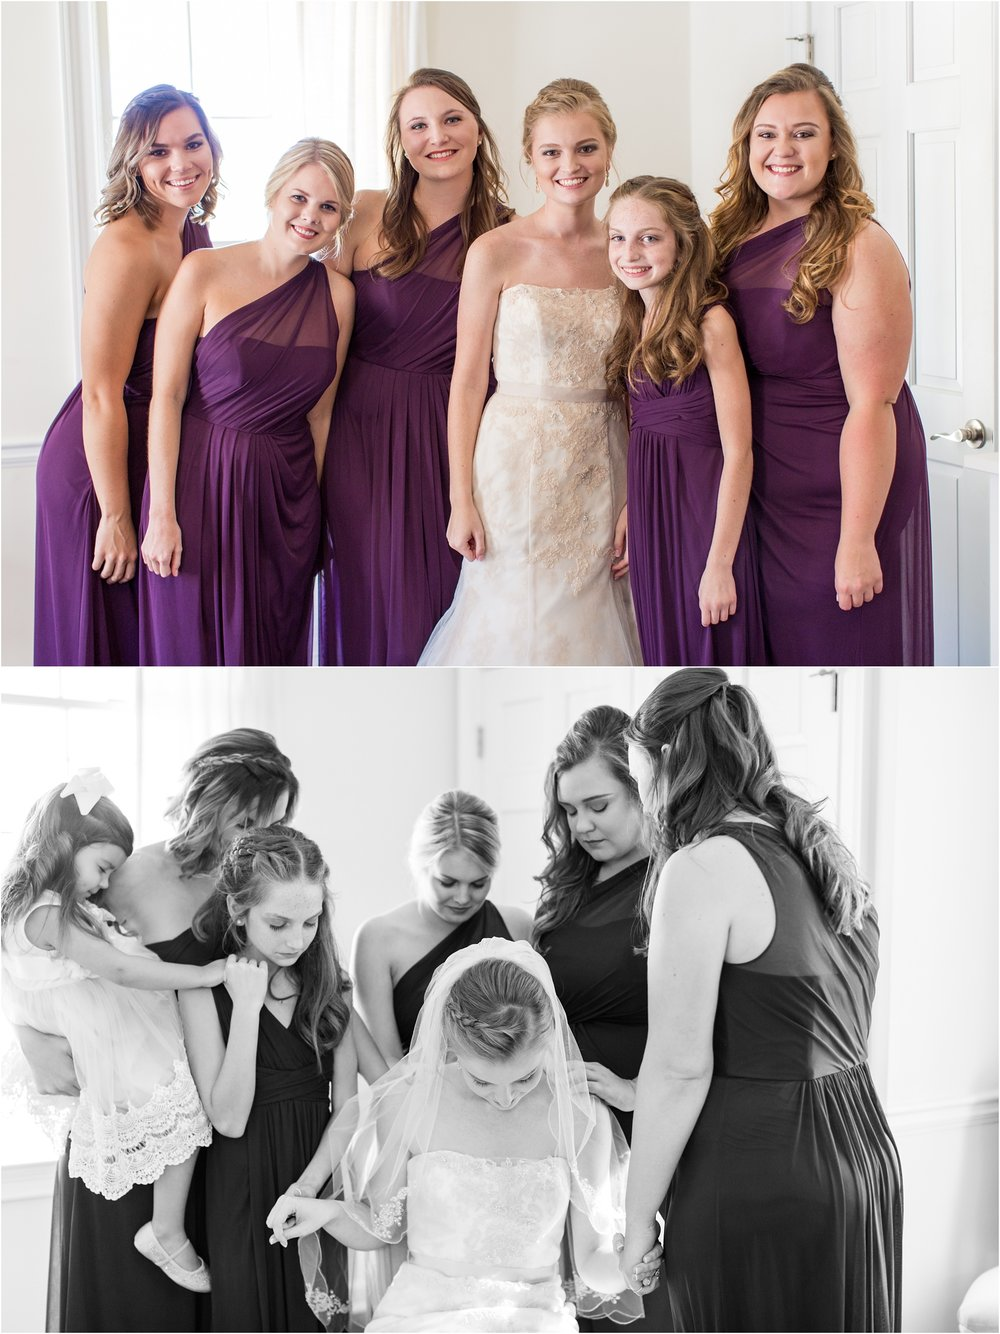 Savannah Eve Photography- Perkins Wedding- Blog-7.jpg